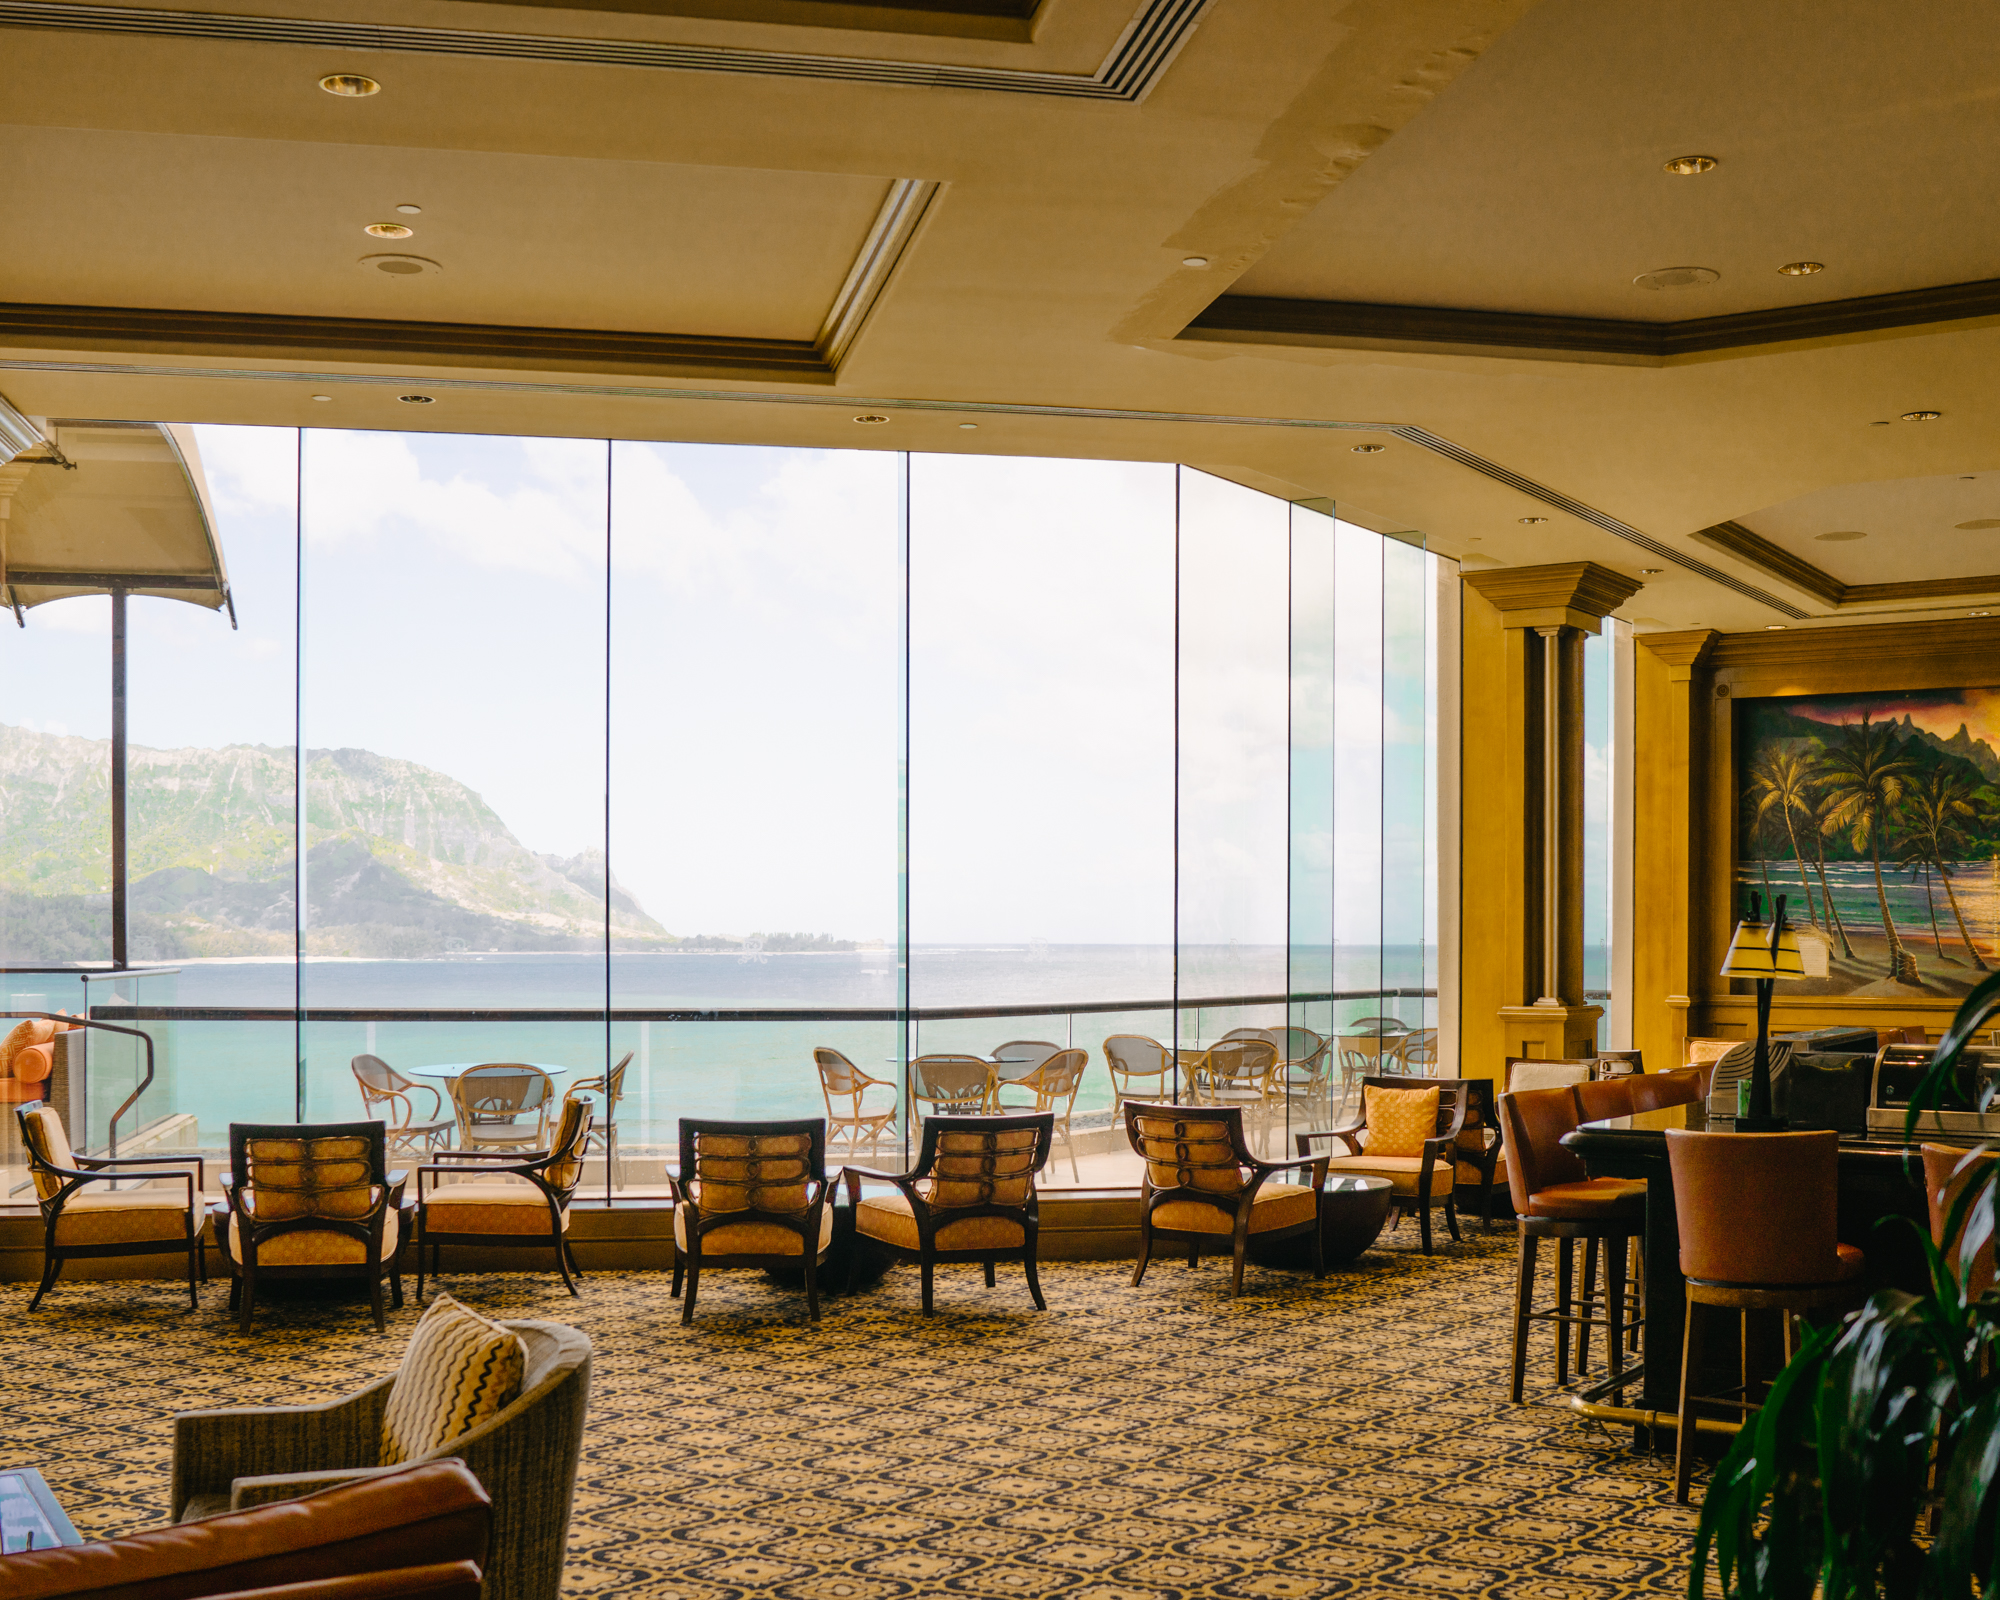 The hotel bar at the St. Regis Princeville in Kauai